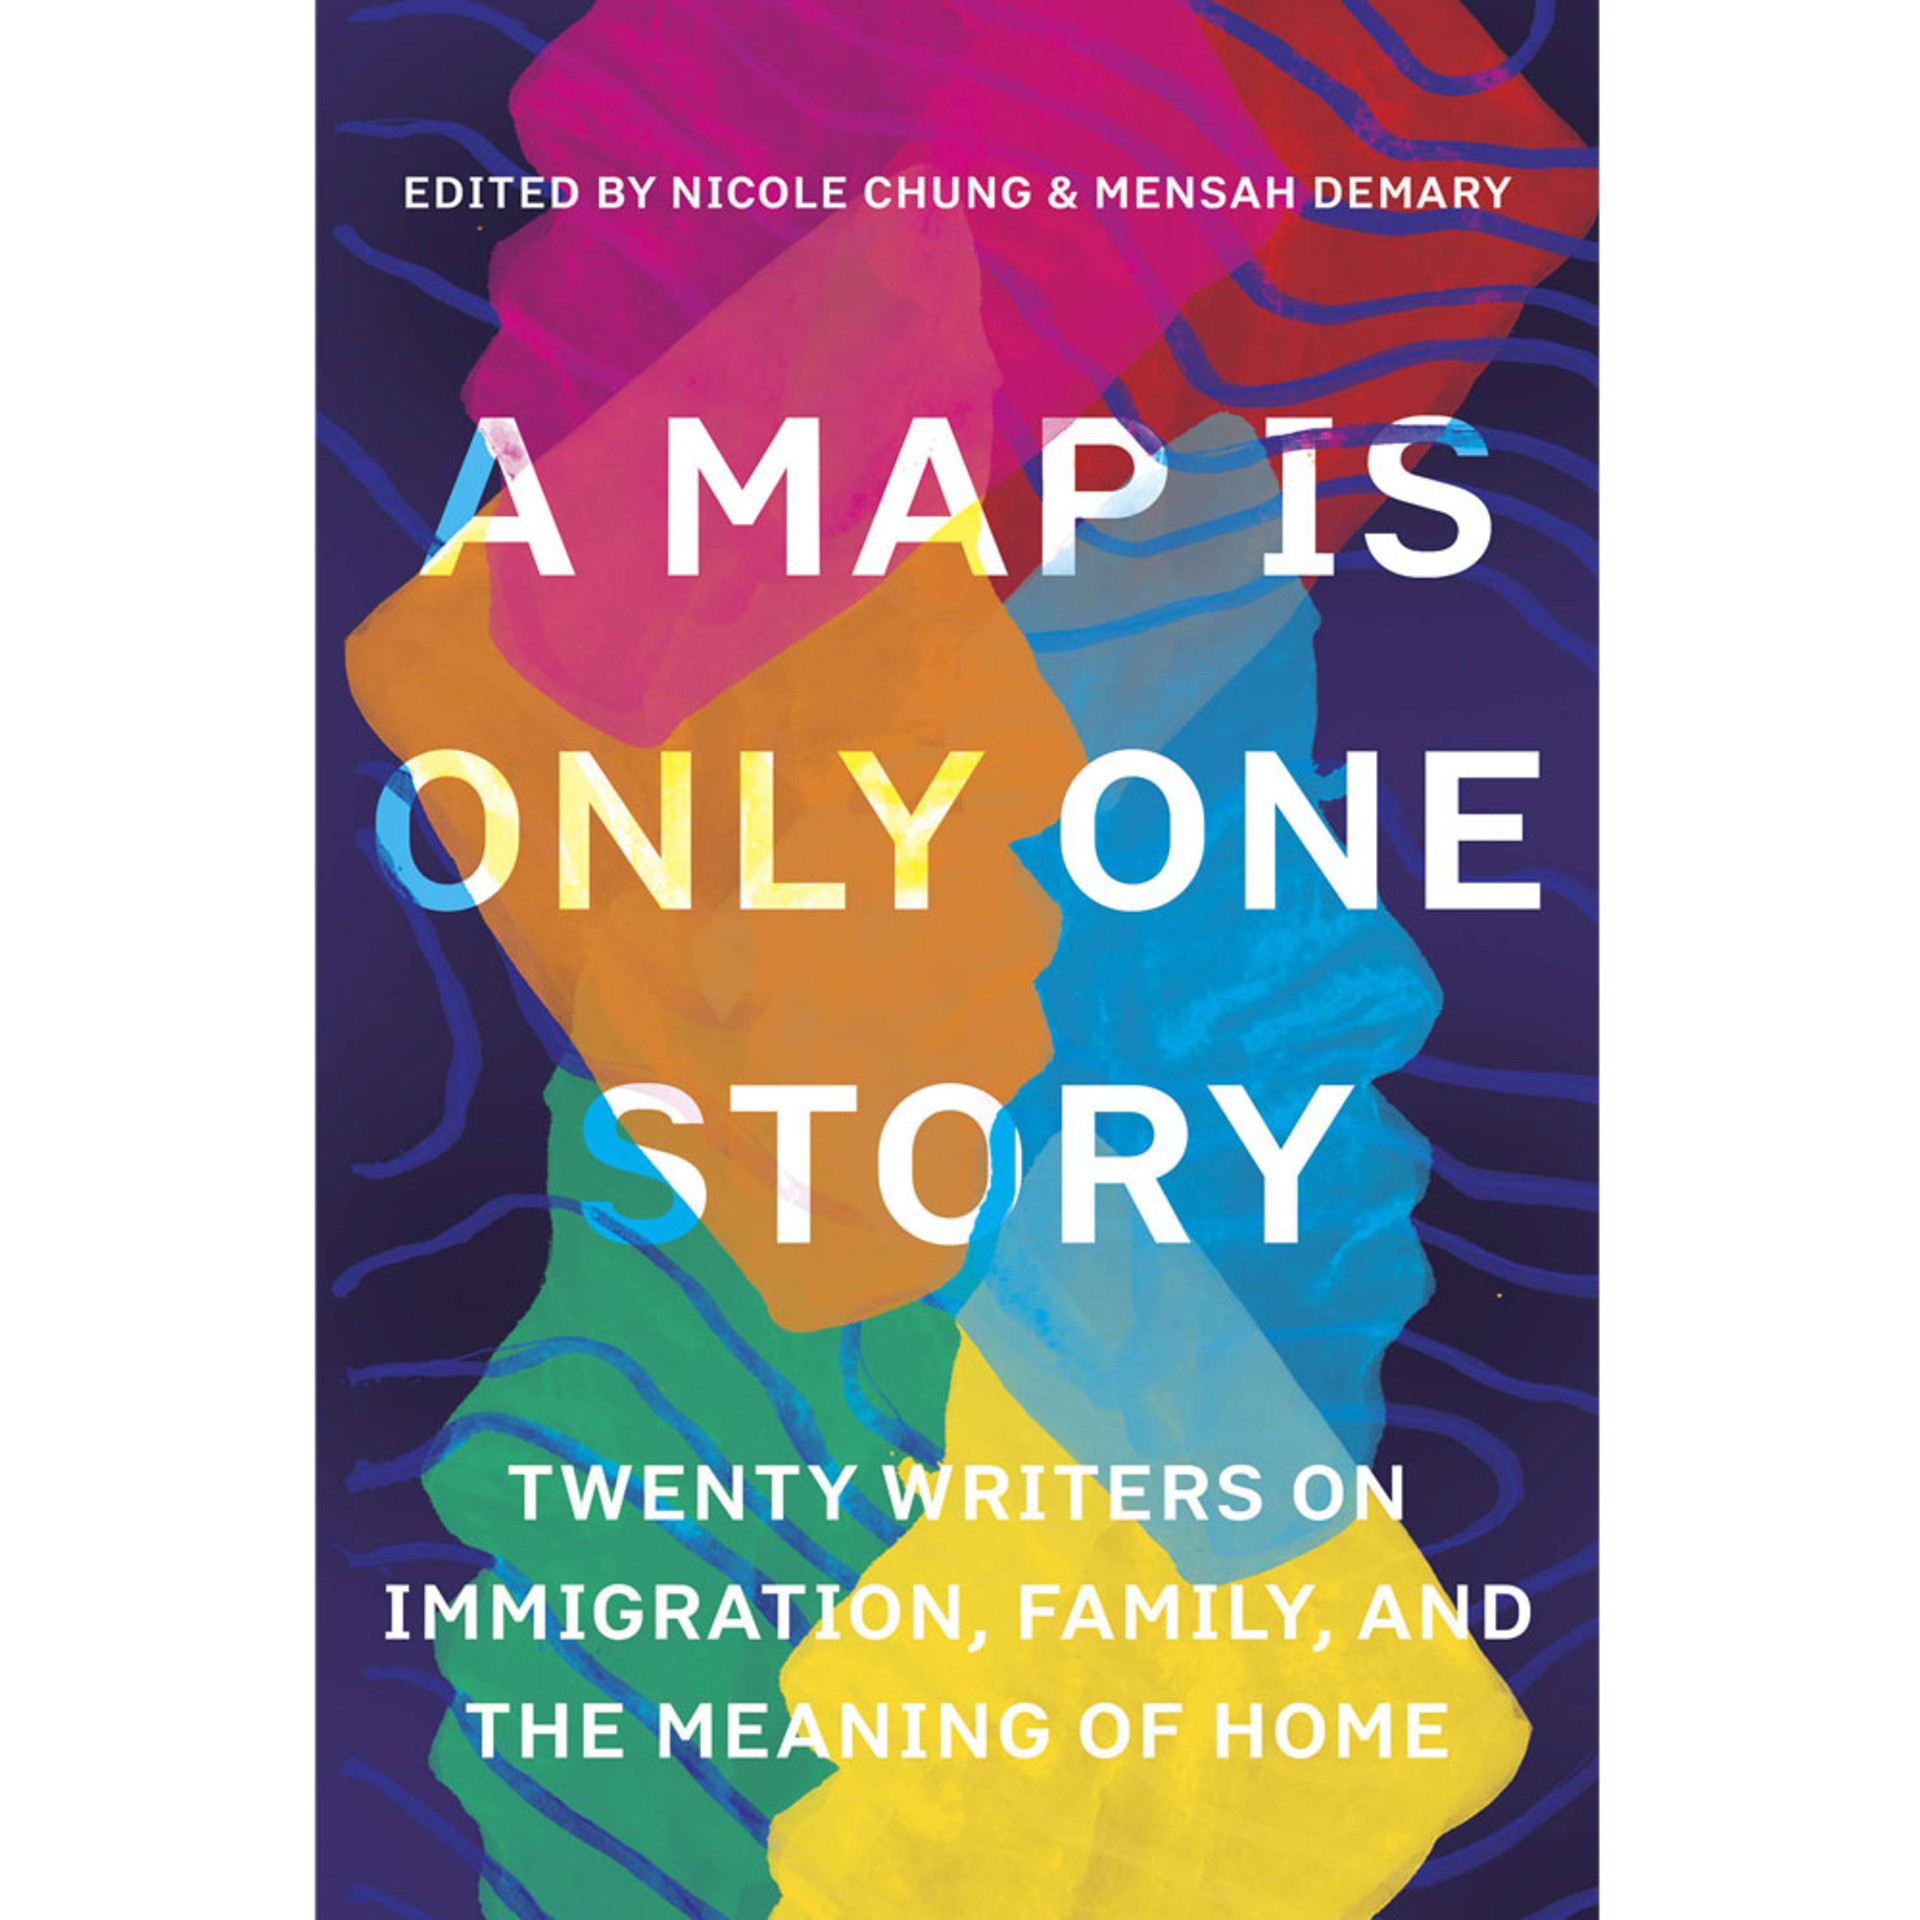 A Map is Only One Story edited by Nicole Chung and Mensah Demary